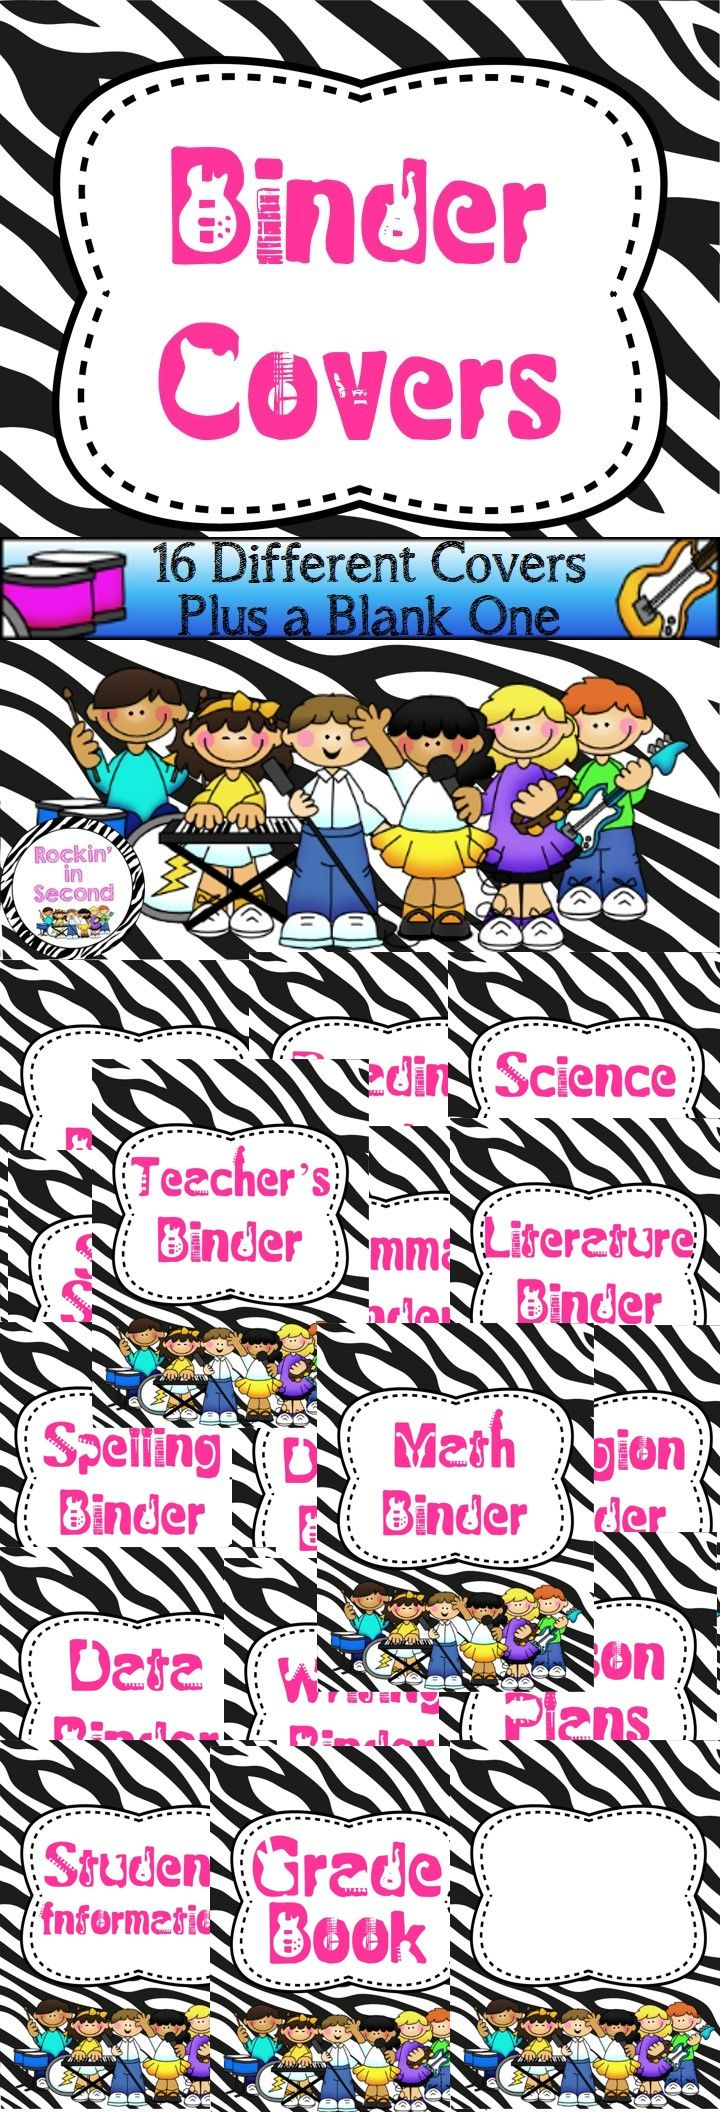 124 best classroom organization management images on pinterest classroom organization for Reading binder cover